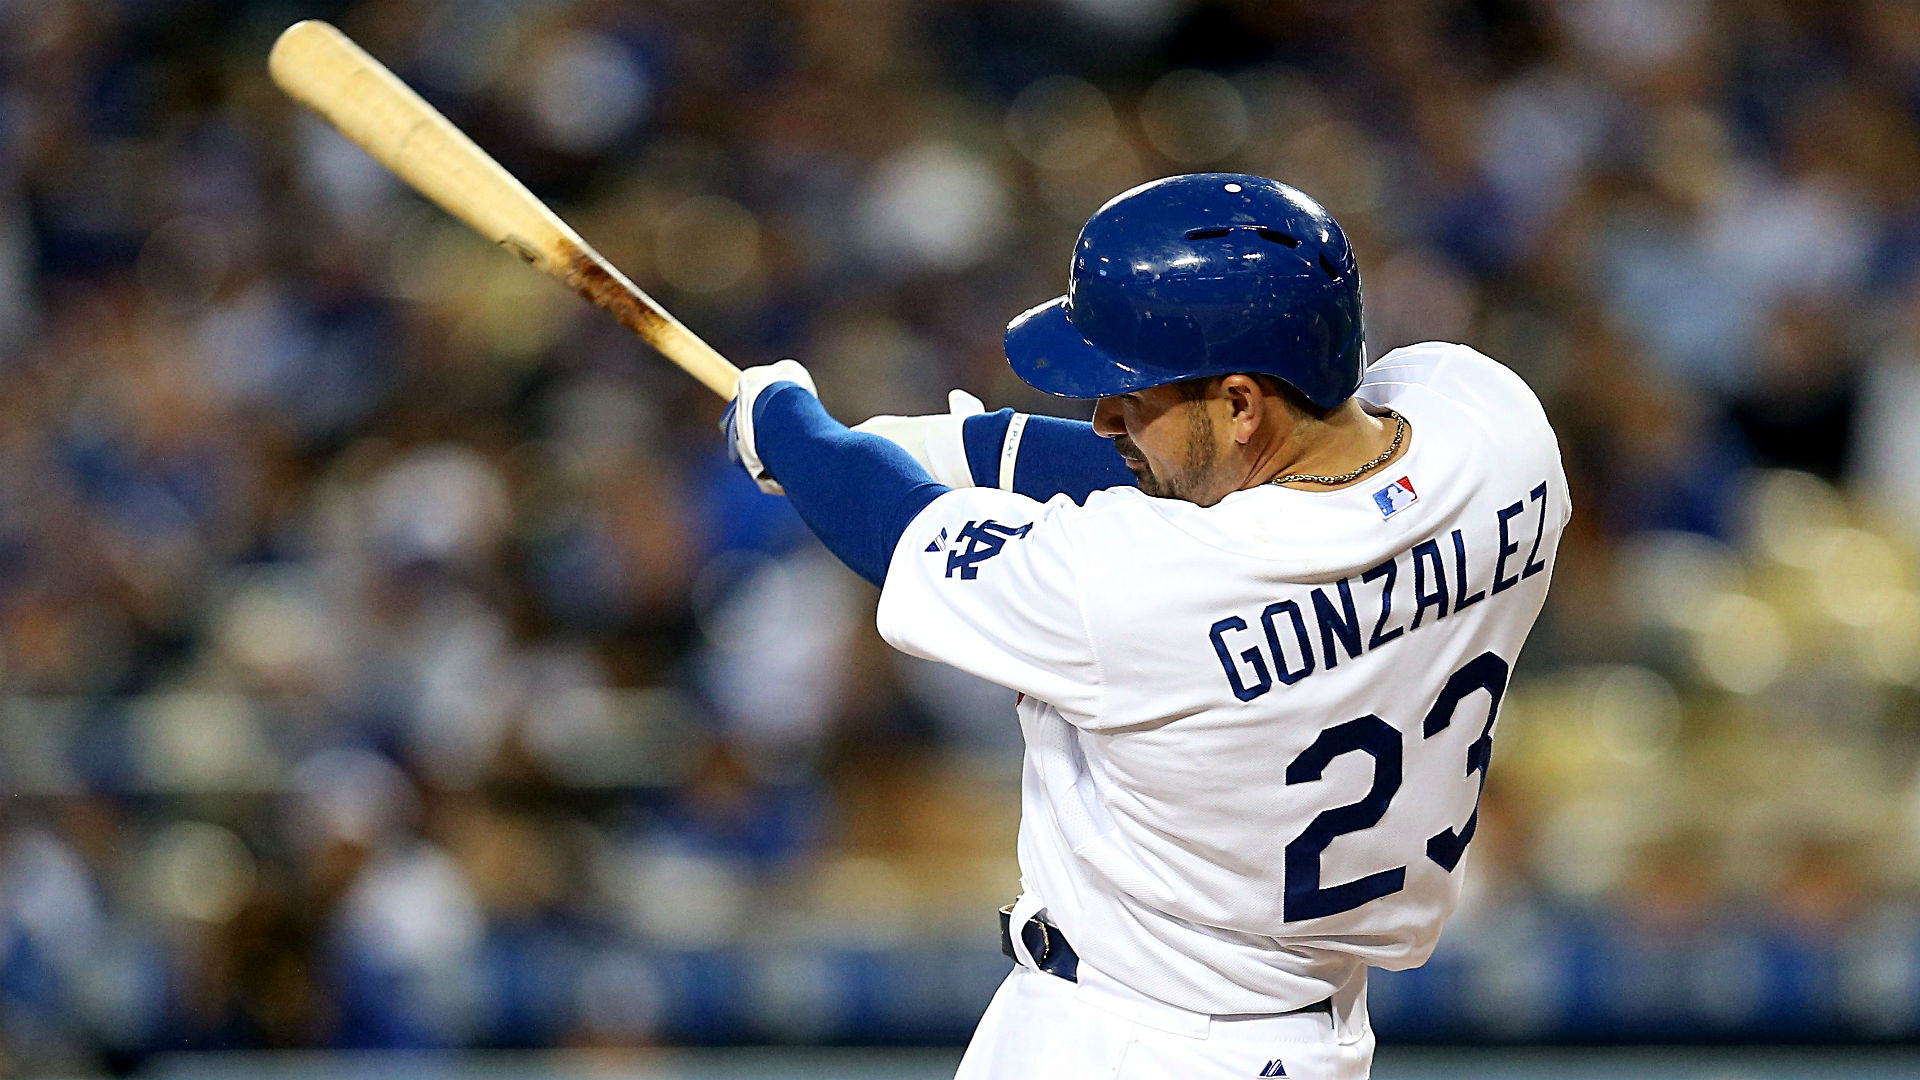 Adrian gonzalez wallpaper